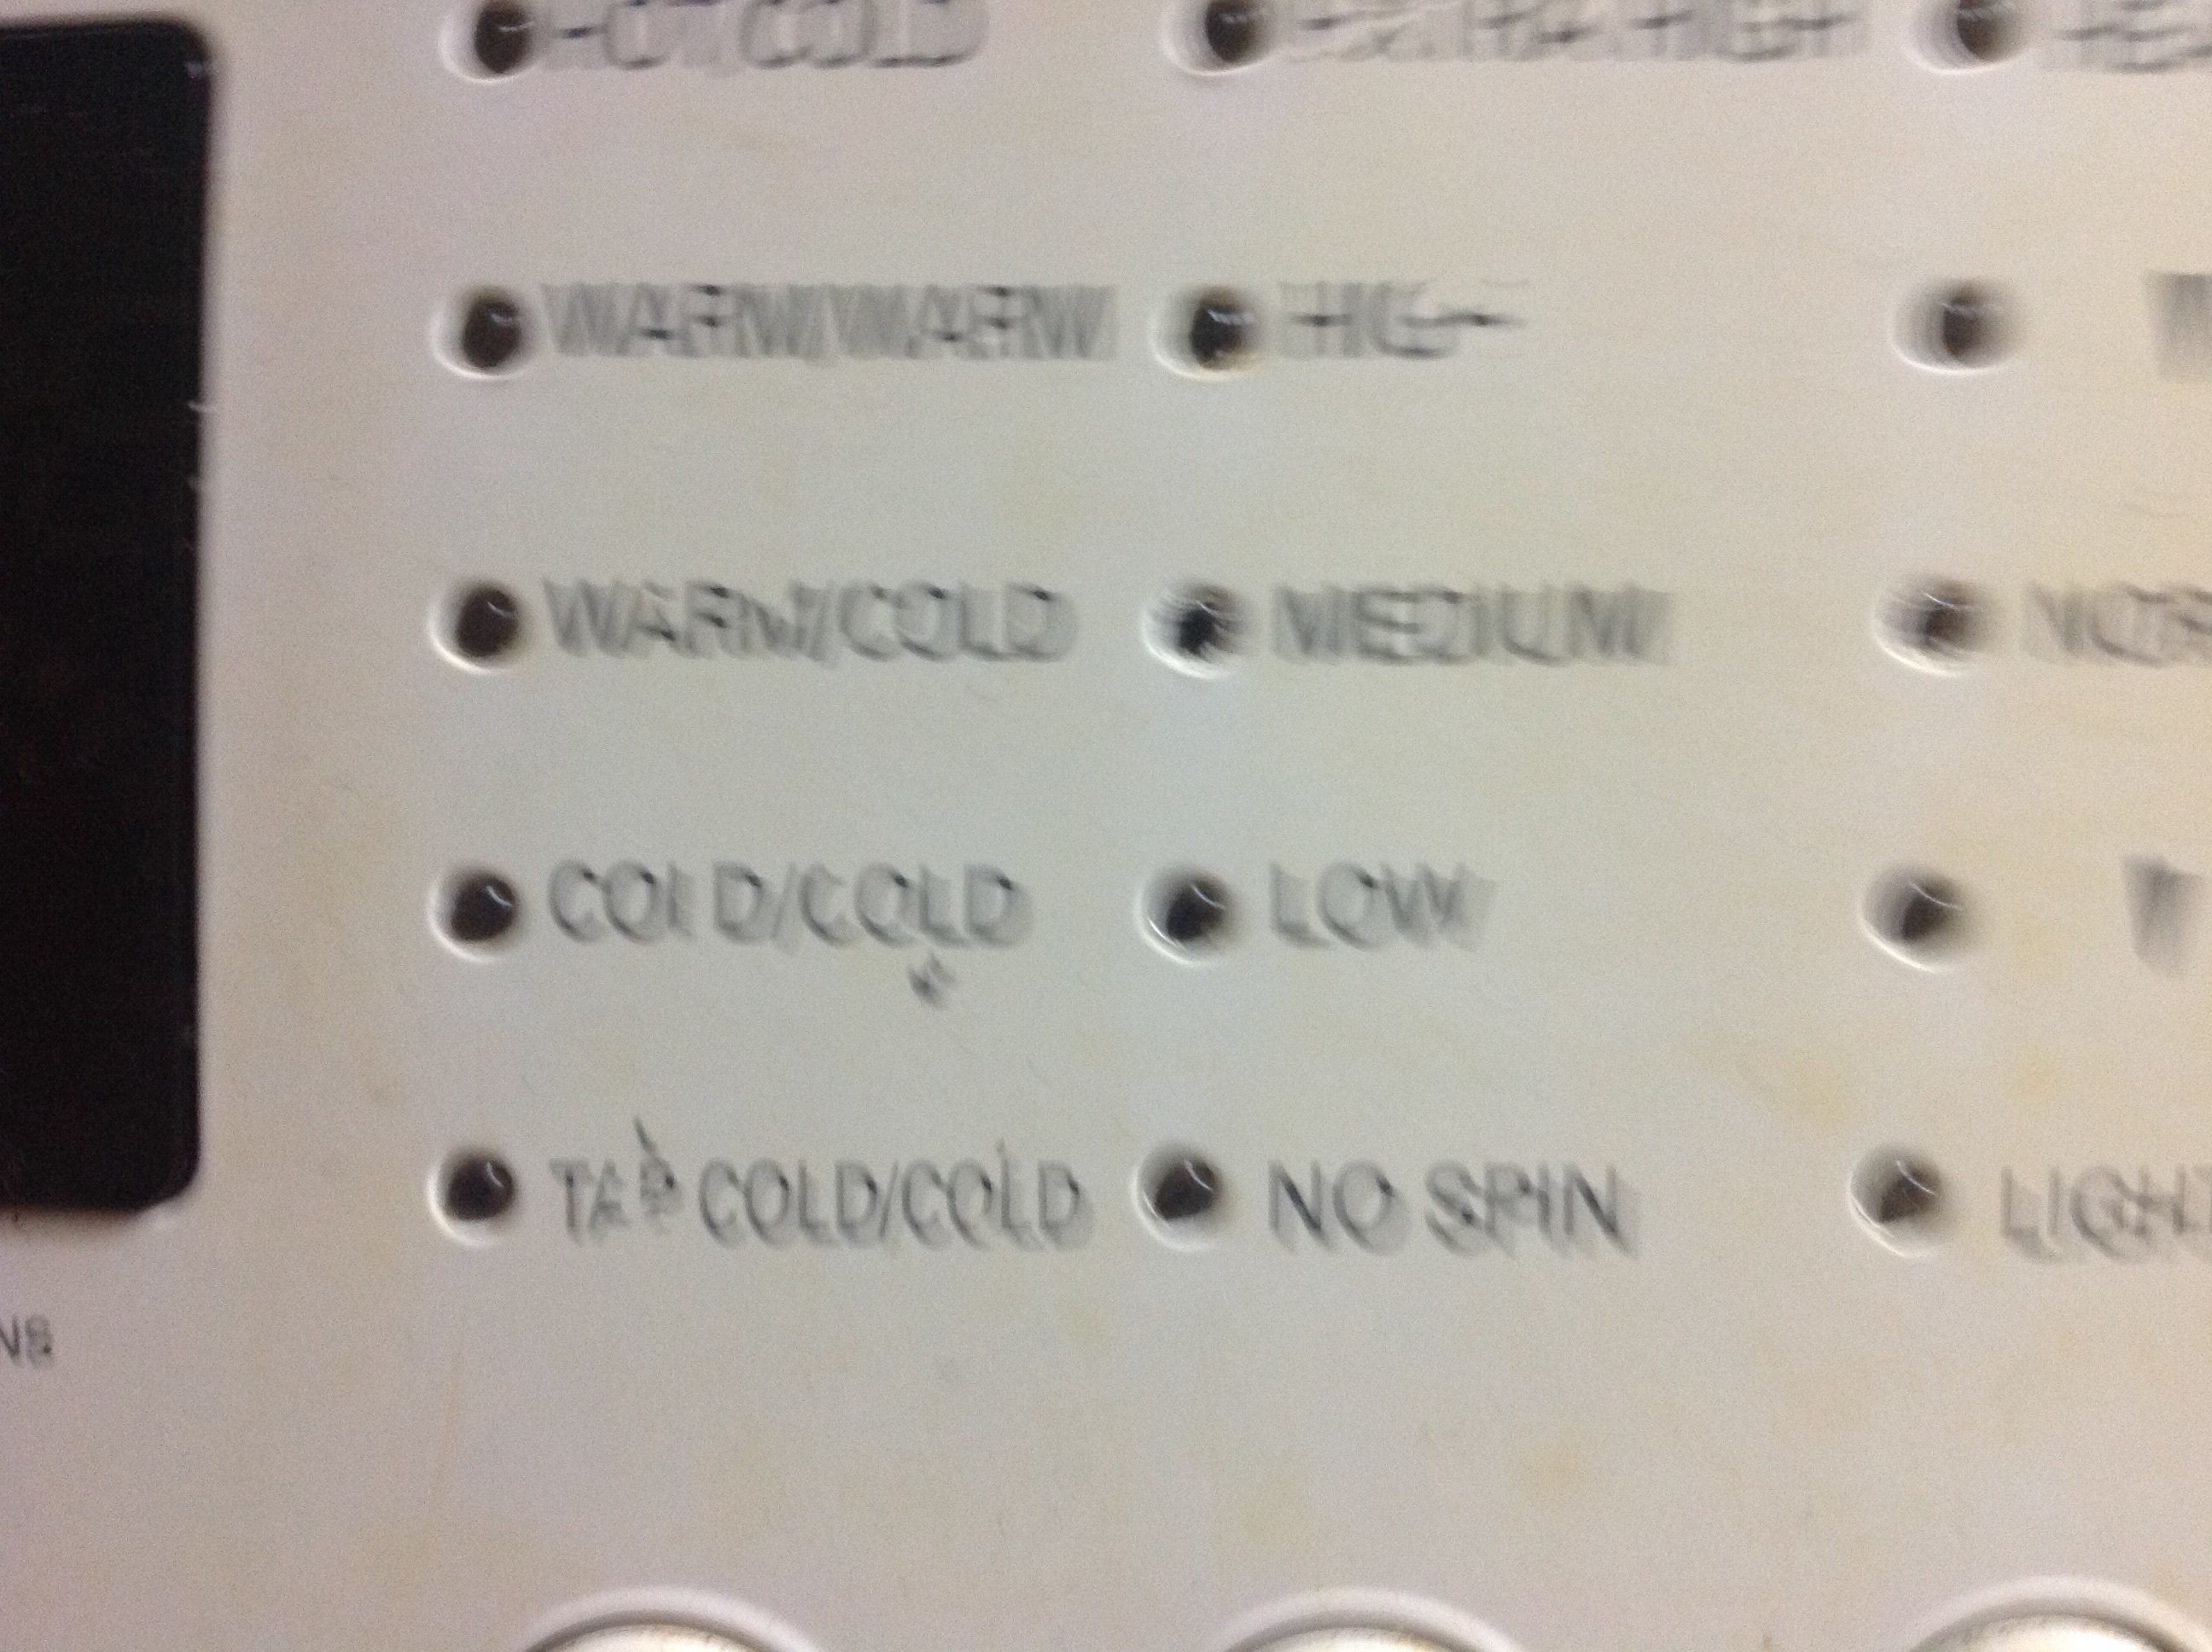 Sears lg washer and dryer - I Bought An Lg Washer And Dryer From Sears About 8 Months I Noticed All The Lettering Coming Off The Machine The Dryer I Noticed First